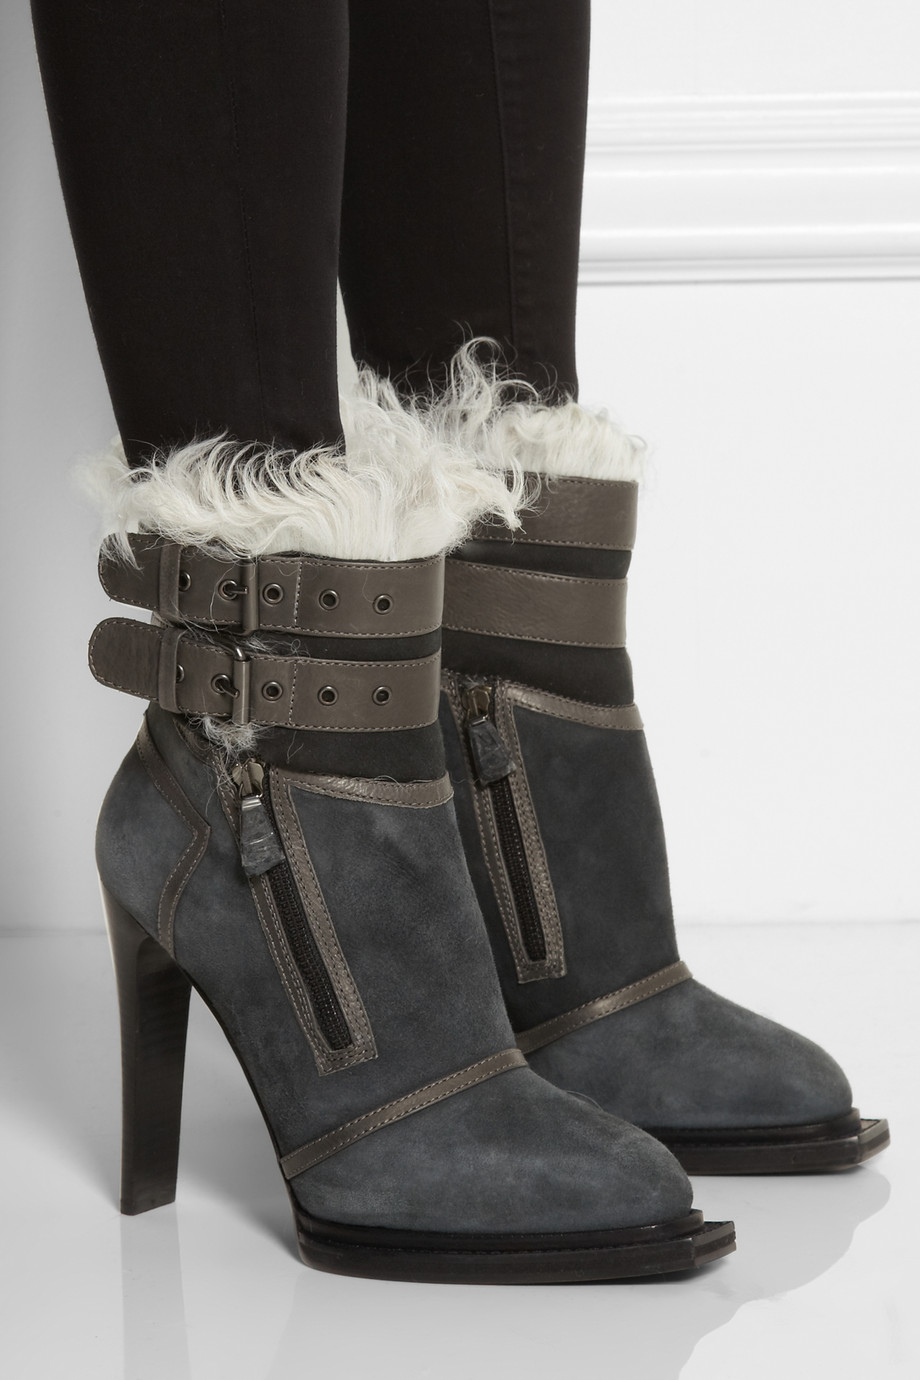 Designer Ankle Boots Boot Yc